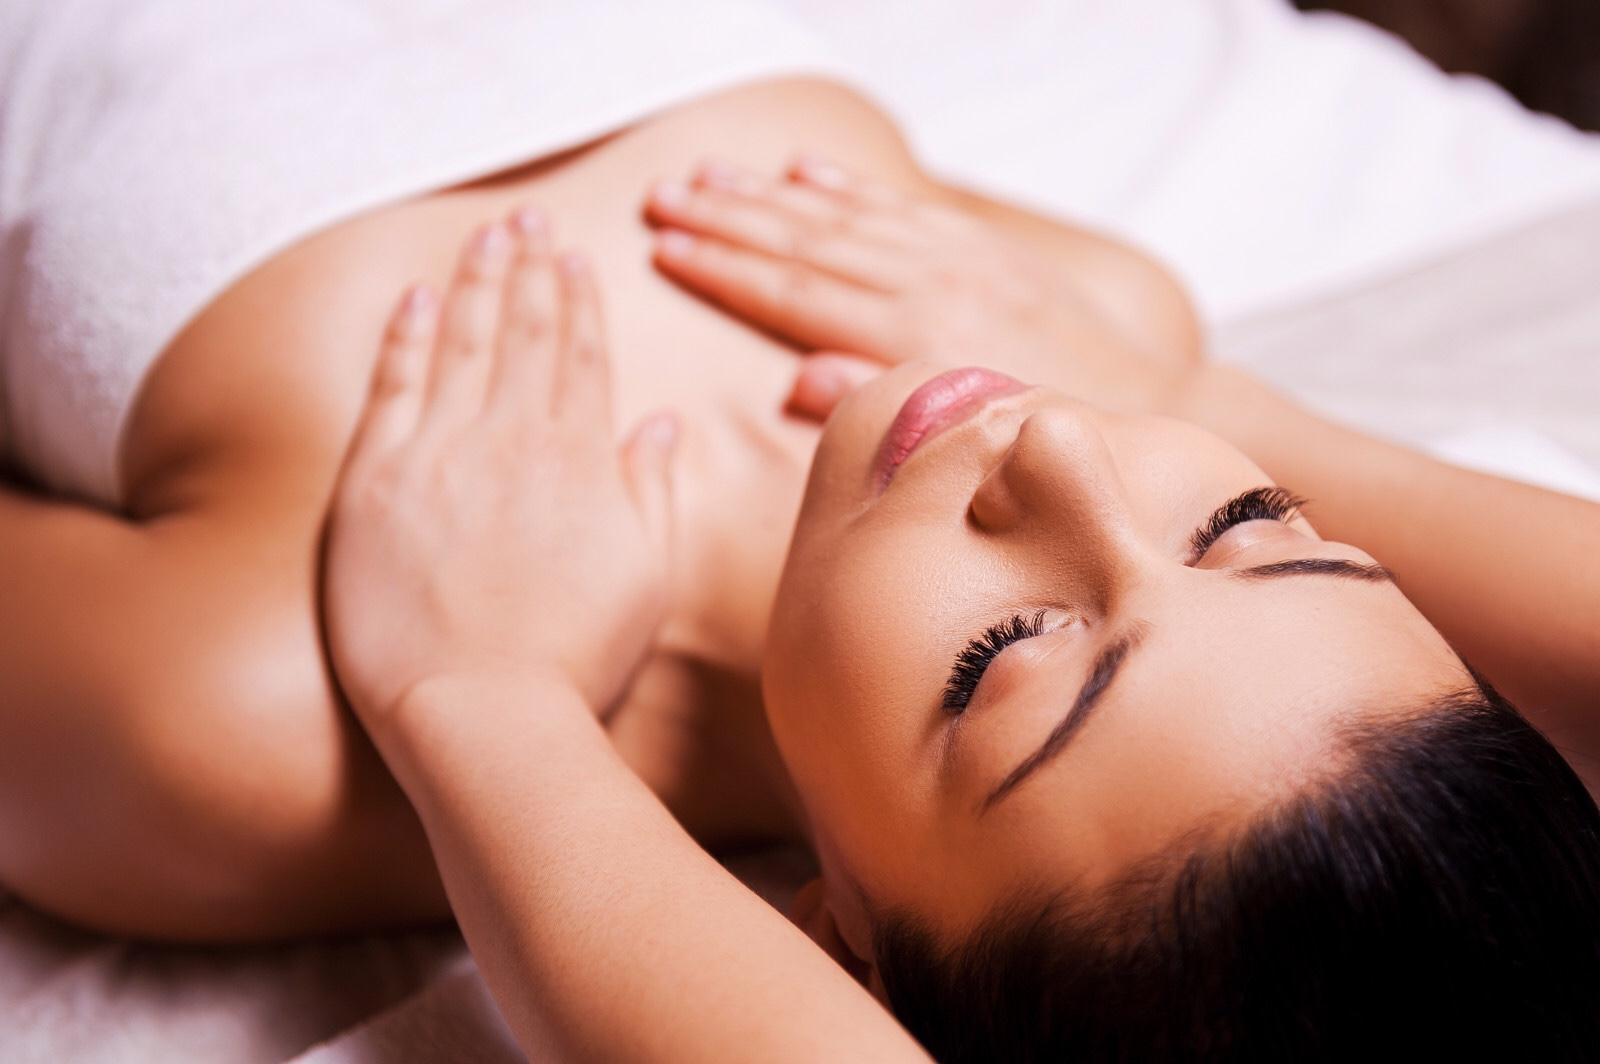 Reiki  aids in relaxation, assisting in the body's natural  healing  processes, and developing emotional, mental, and spiritual well-being. It may also induce deep relaxation, help people cope with difficulties, relieve emotional stress, and improve overall wellbeing.  A non-invasive healing touch, directing  Life Force  energy towards recipients ailments. Similar to acupuncture in addressing blockages of the bodies meridians in order to allow  Qi , life force energy to flow unobstructed through the body.  Chakras, like Meridians can become clouded and blocked by stagnant energy, lingering from trauma and emotional wounds. Once we begin to offer the body  Reiki , the flow of energy will allow for these past traumas to be cleared and healed.  On average, eight reiki sessions will be necessary to work through these traumas effectively. Yet, every session offers an incredible healing and soothing experience.  Ask about our  8-session package , for a substantial savings!